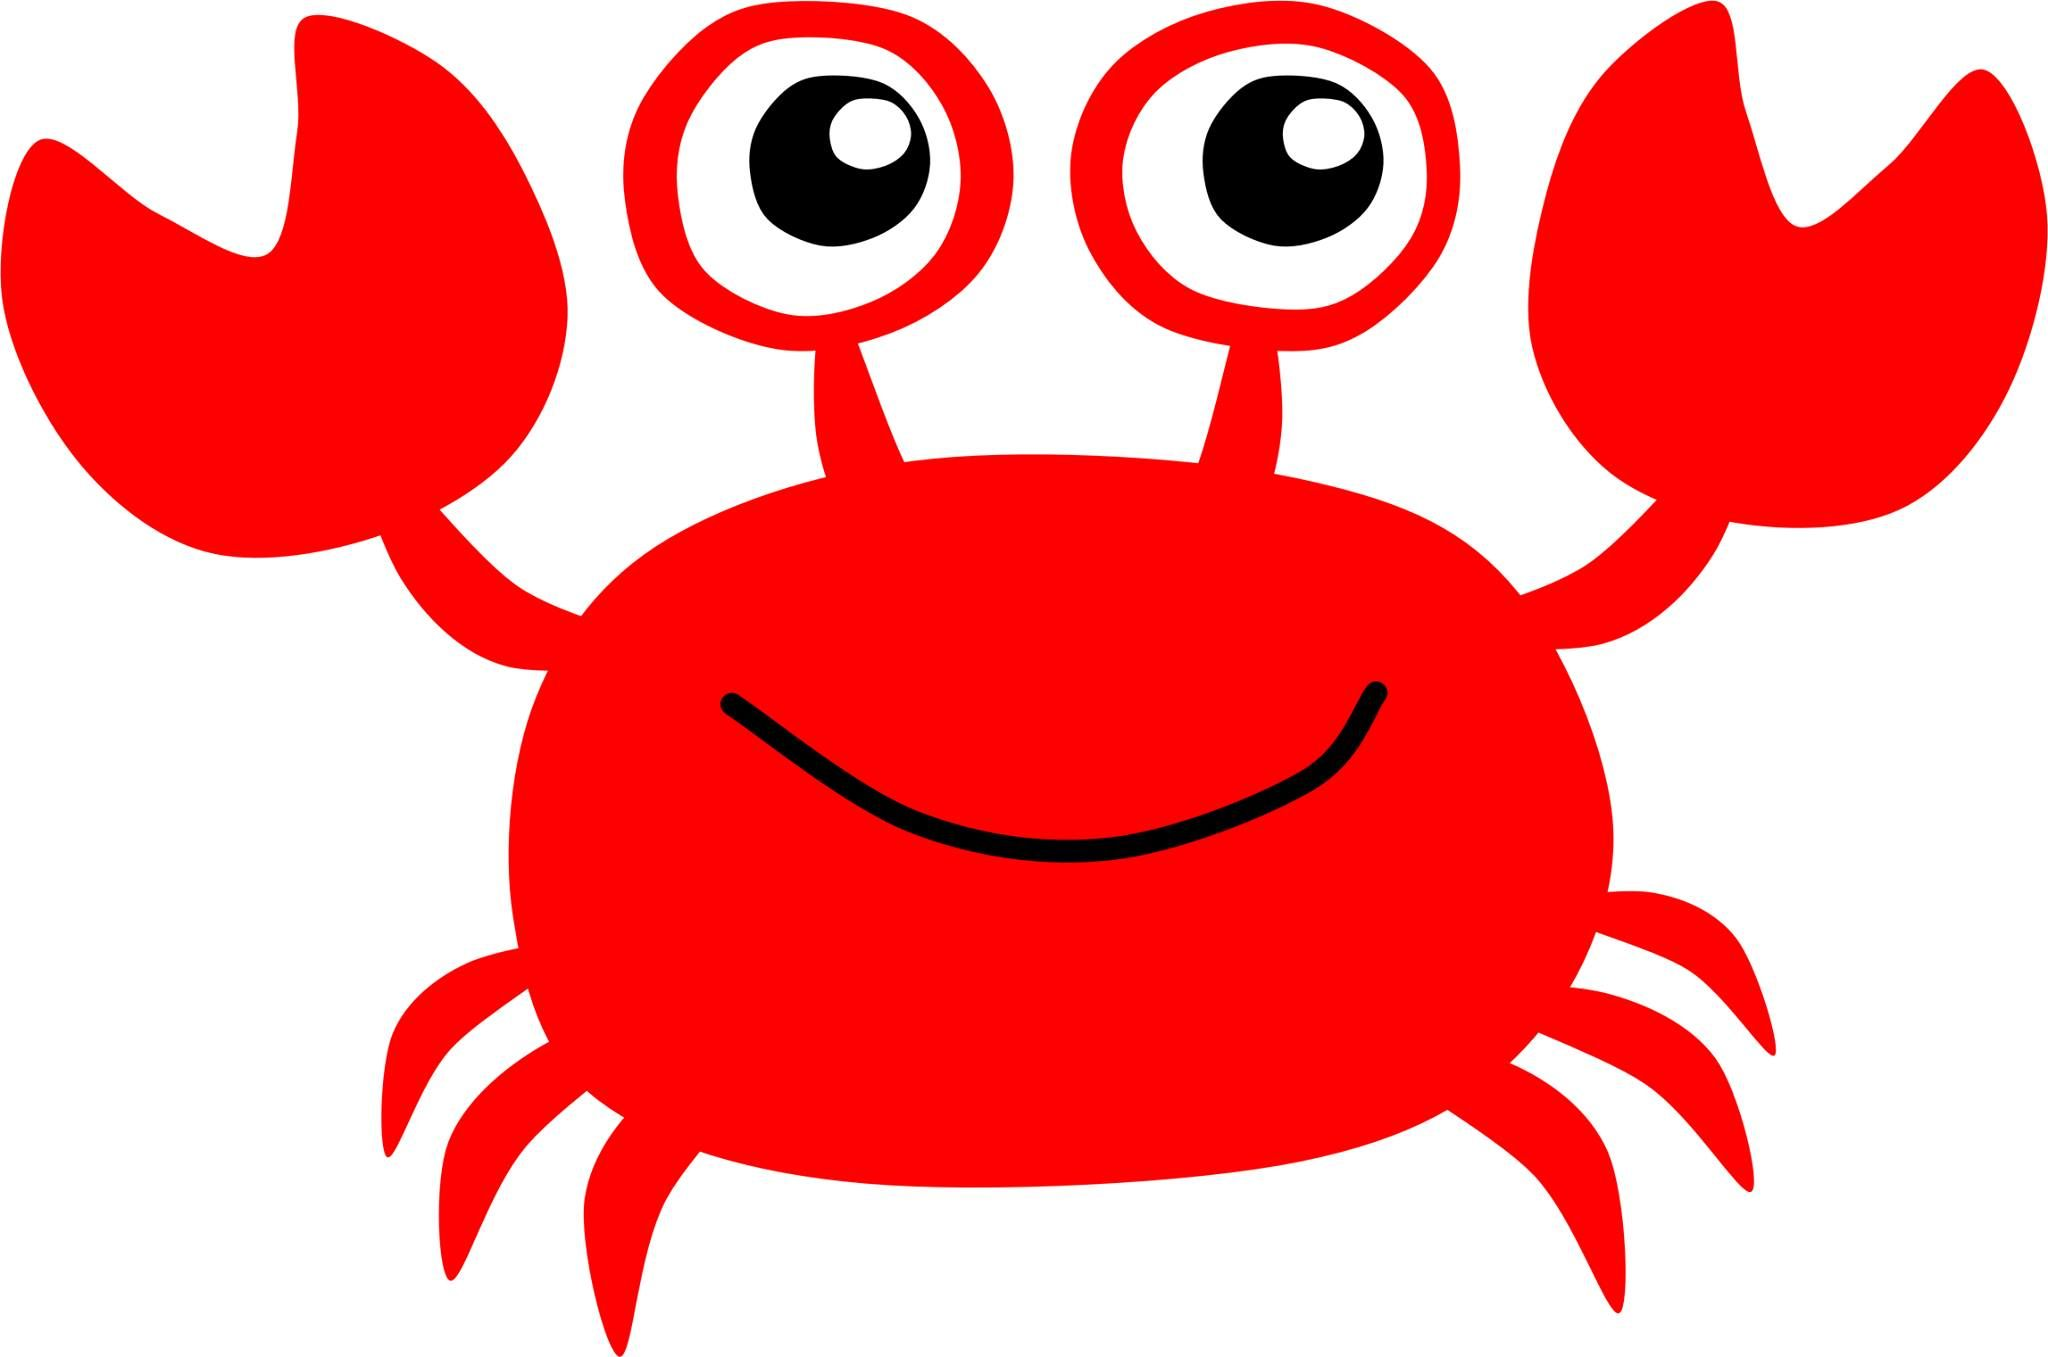 Looking For A List Of Community Events In Plumas County Look No Further Just Go To Https Loom Ly 7y3vb9c Crab Cartoon Crab Art Crab Painting